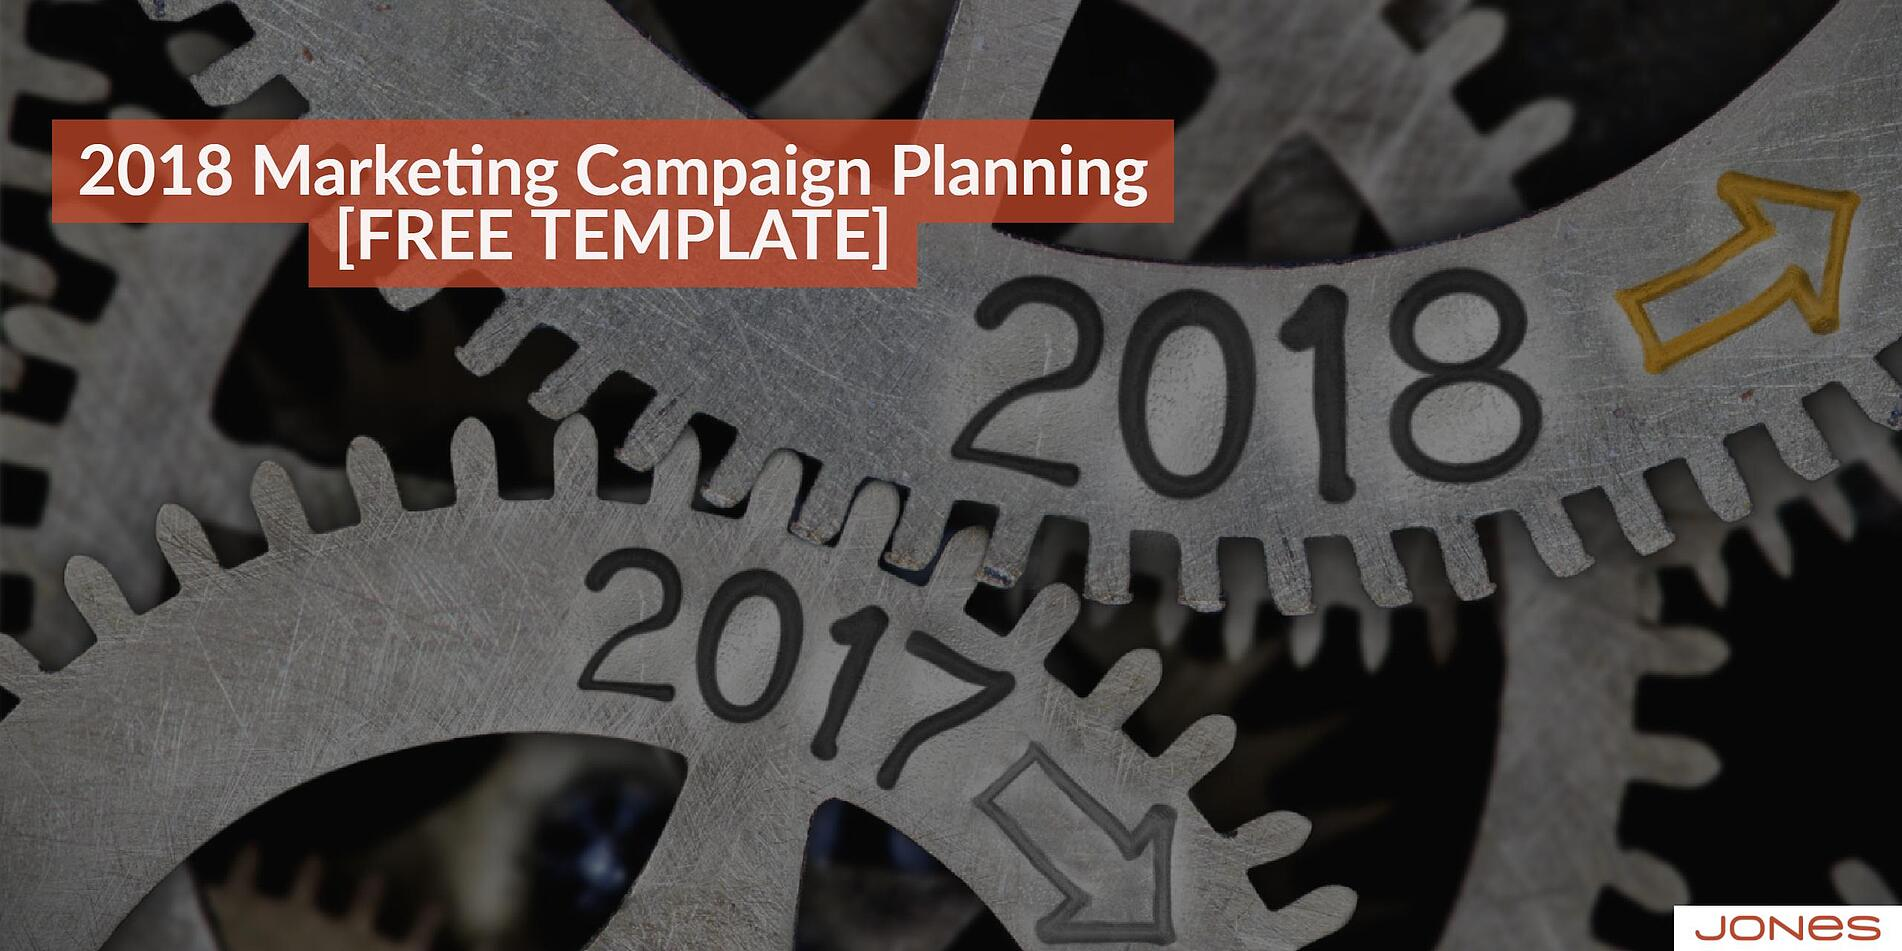 2018 Marketing Plan It's Time for the Year-End Push